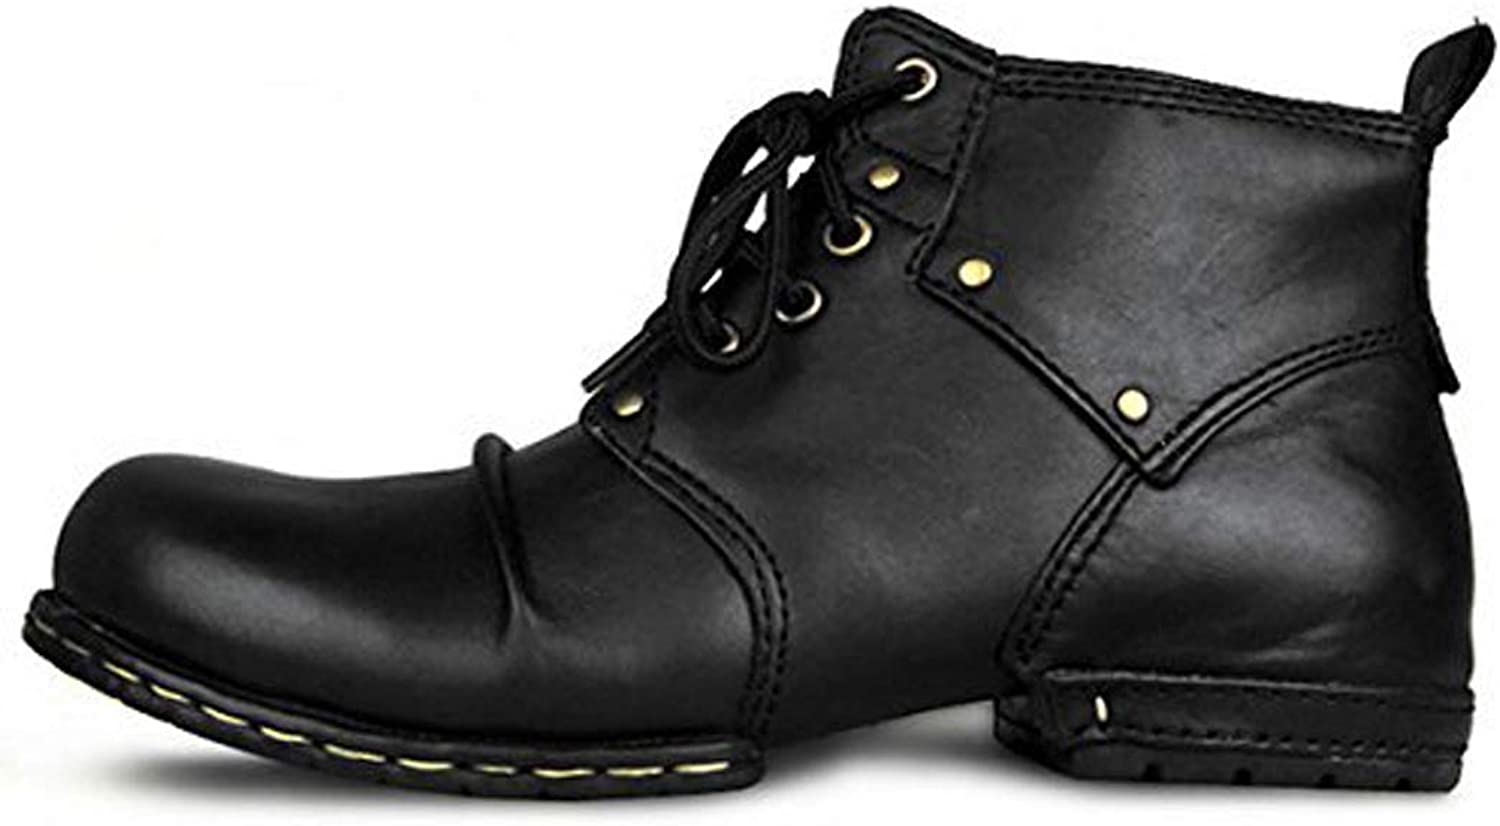 Retro Martin Men's Boots, Men's Leather Tooling Boots Men's Booties Large Size Retro Trend high Help Tooling Boots